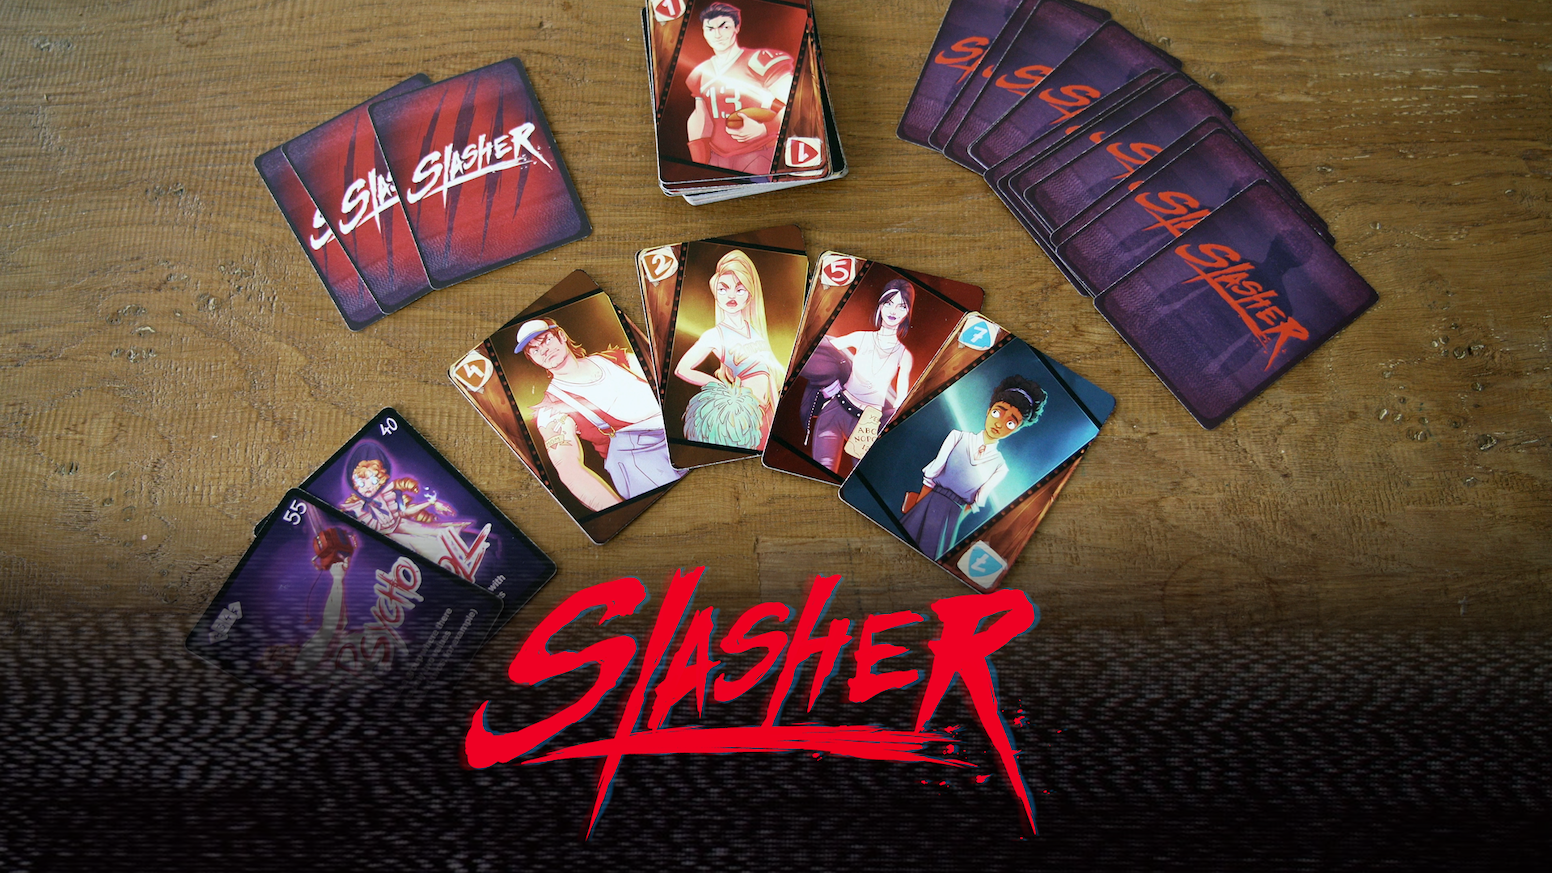 Play the good guys AND the Villains in this casual card game with social deduction elements inspired by 80s horror movies